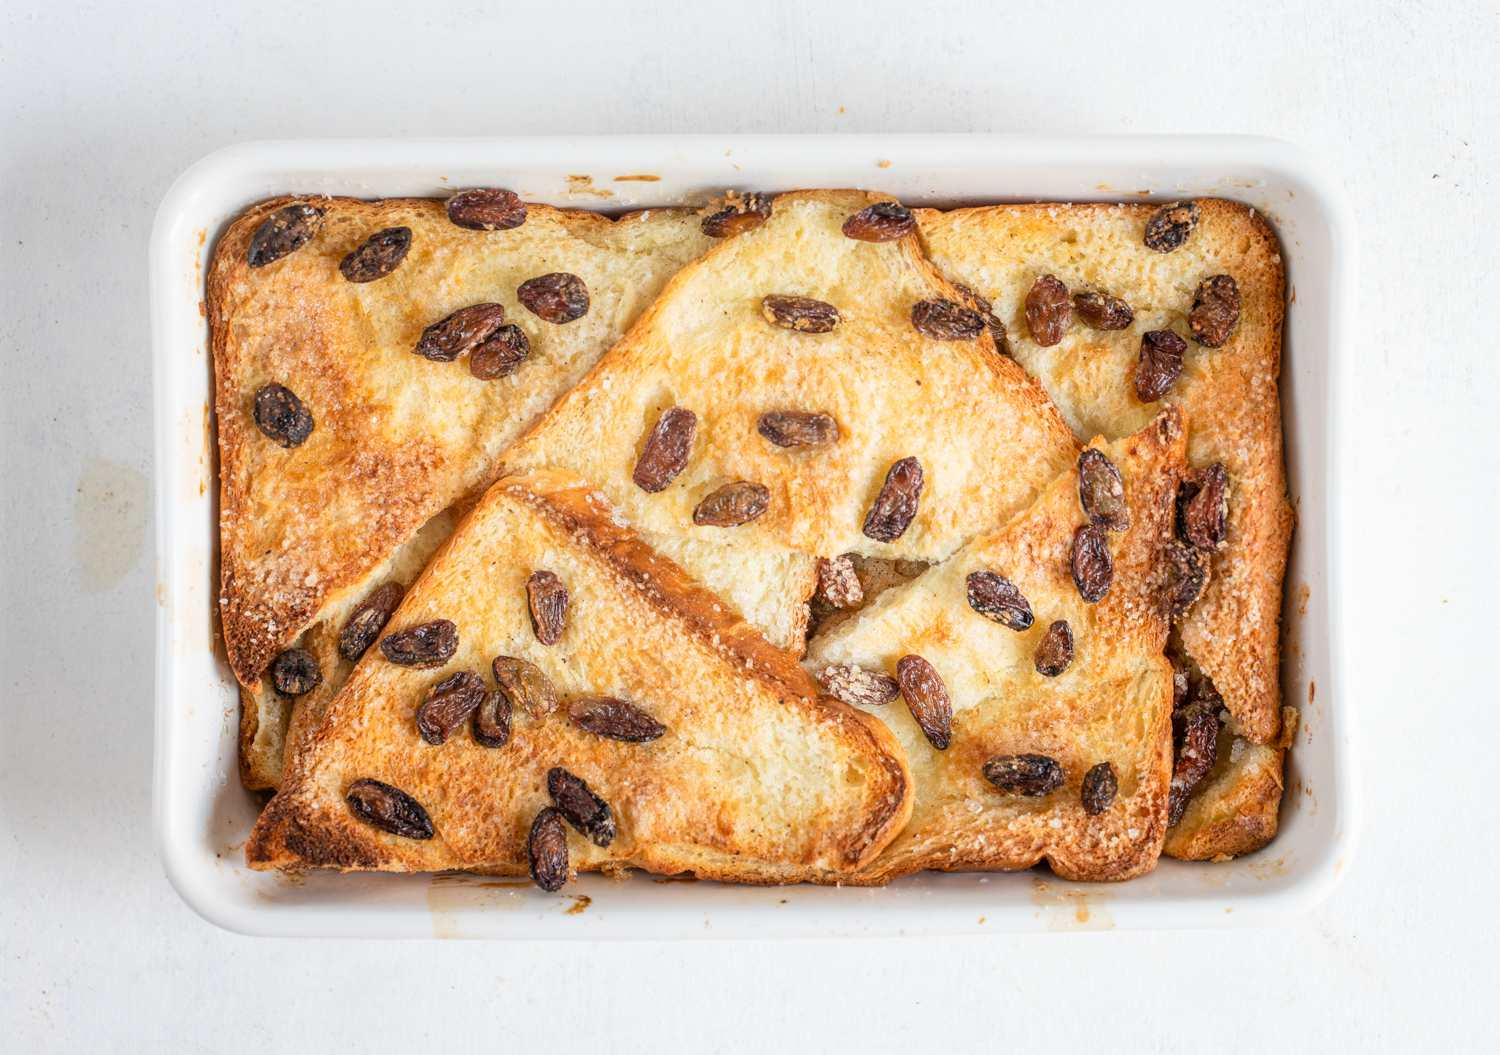 Cooked bread and butter pudding